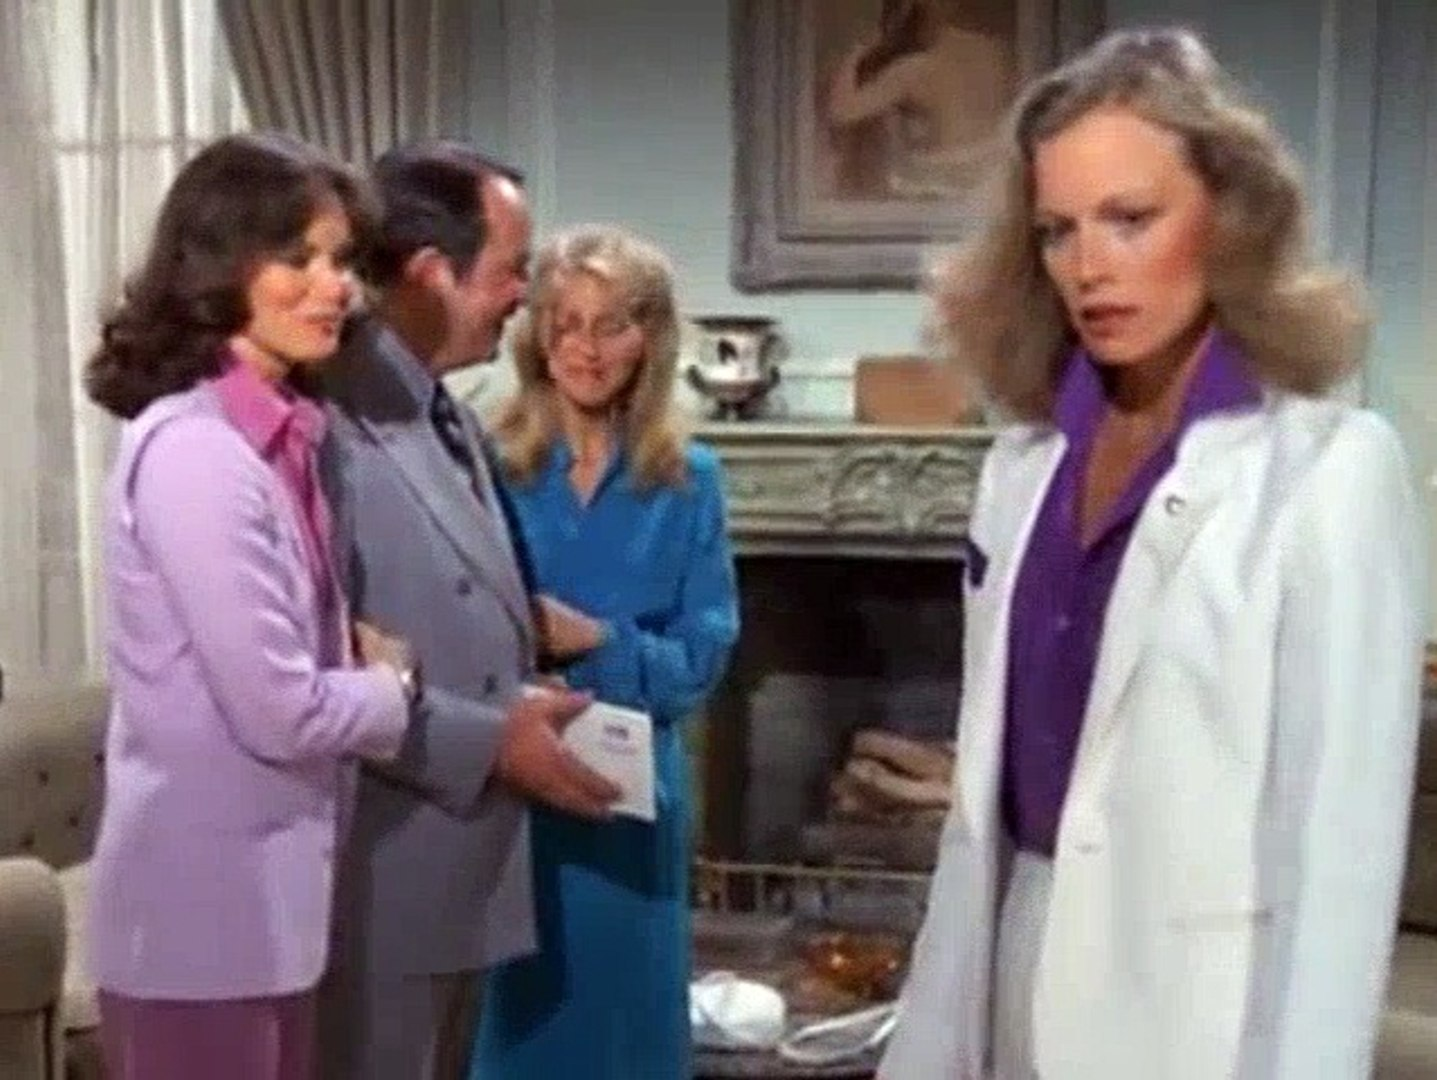 Charlie's Angels S04E01 - Love Boat Angels (1)